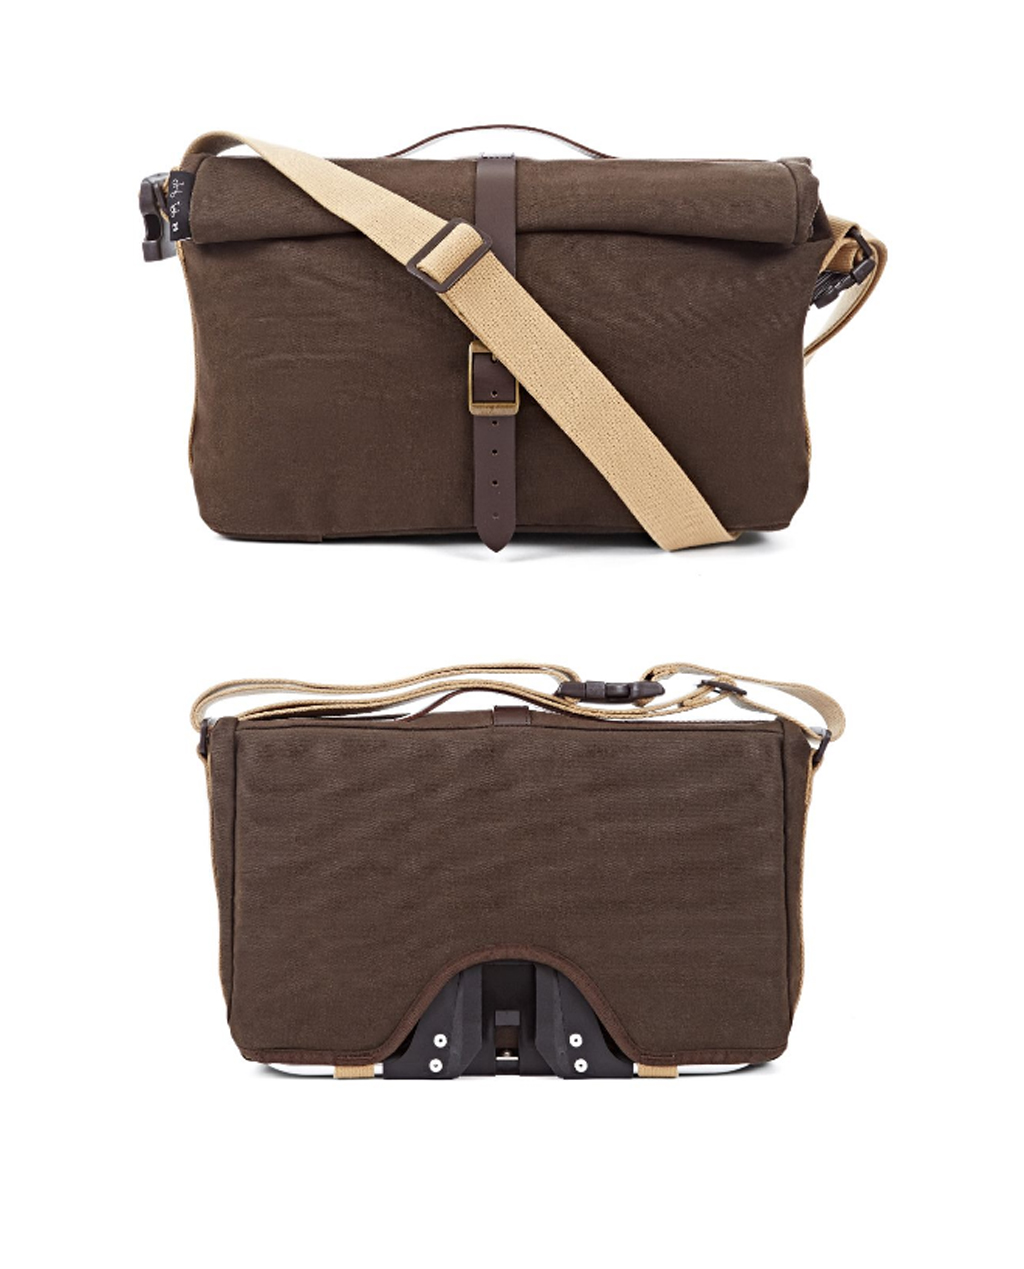 Q-Parts - Brompton Roll Top Shoulder Bag - Waxed Cotton